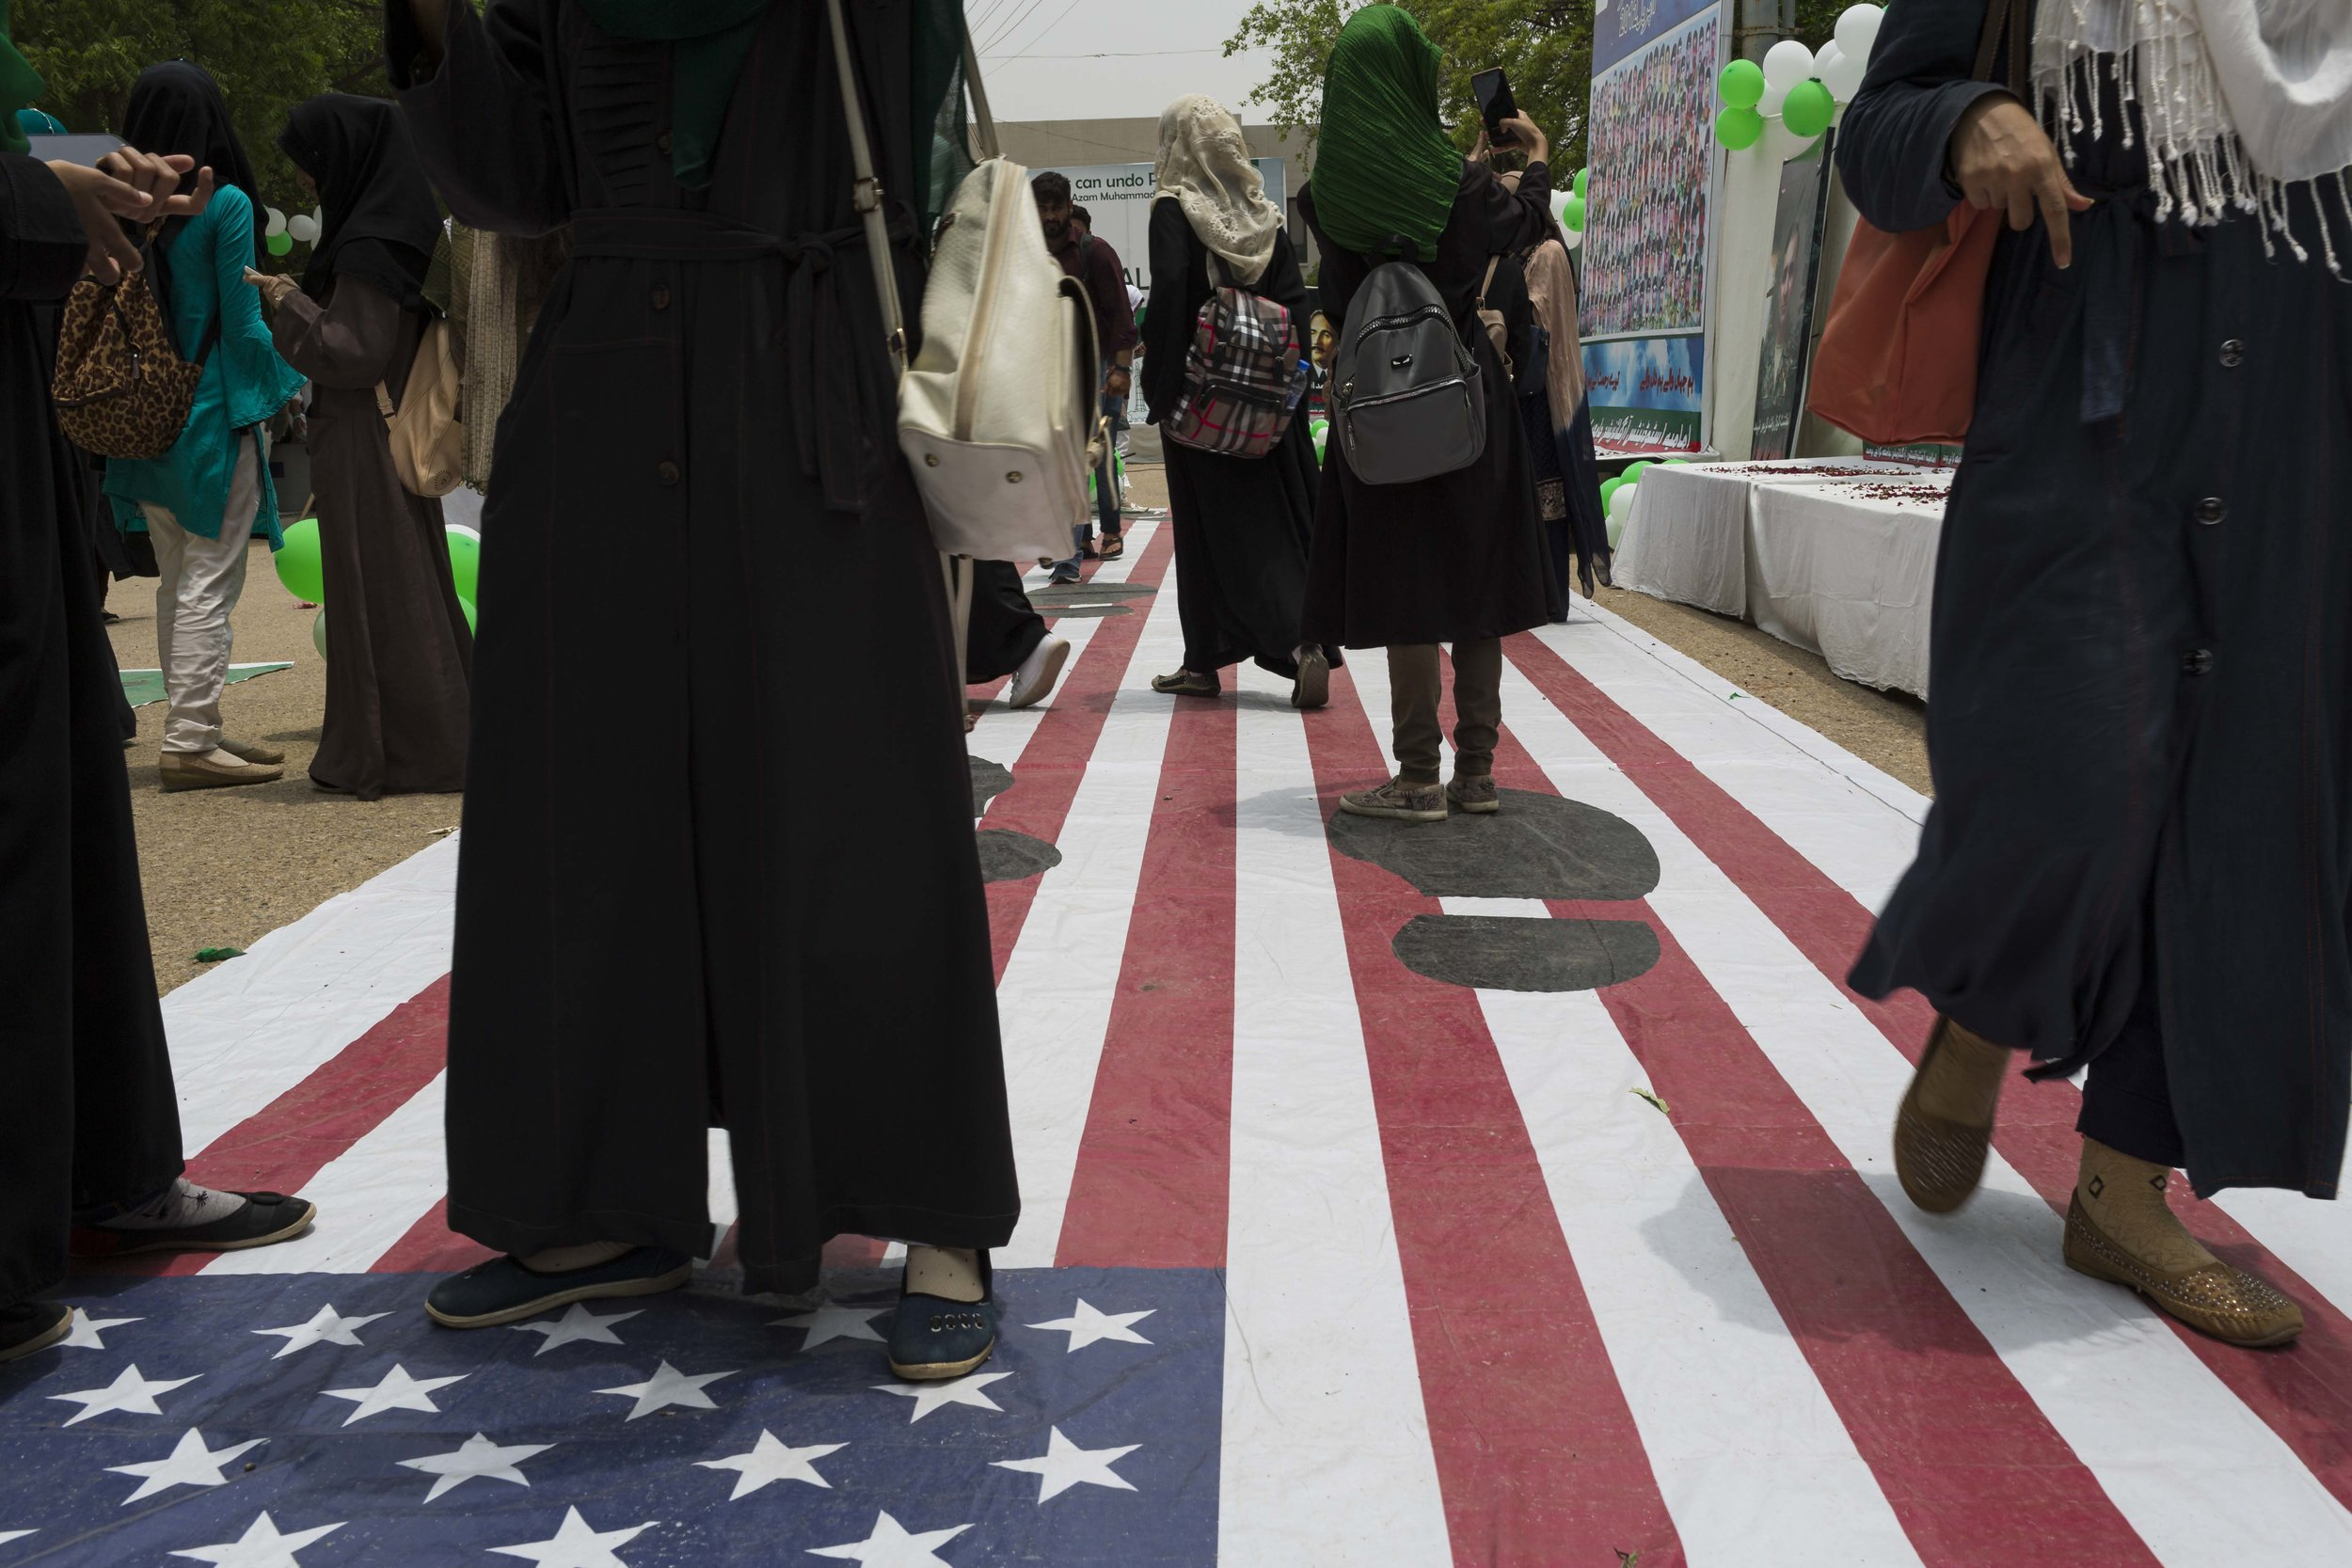 Students at the University of Karachi attend an exhibition honoring heroes and martyrs, as Pakistan Independence Day grows nearer, on Thursday Aug 8, 2019.